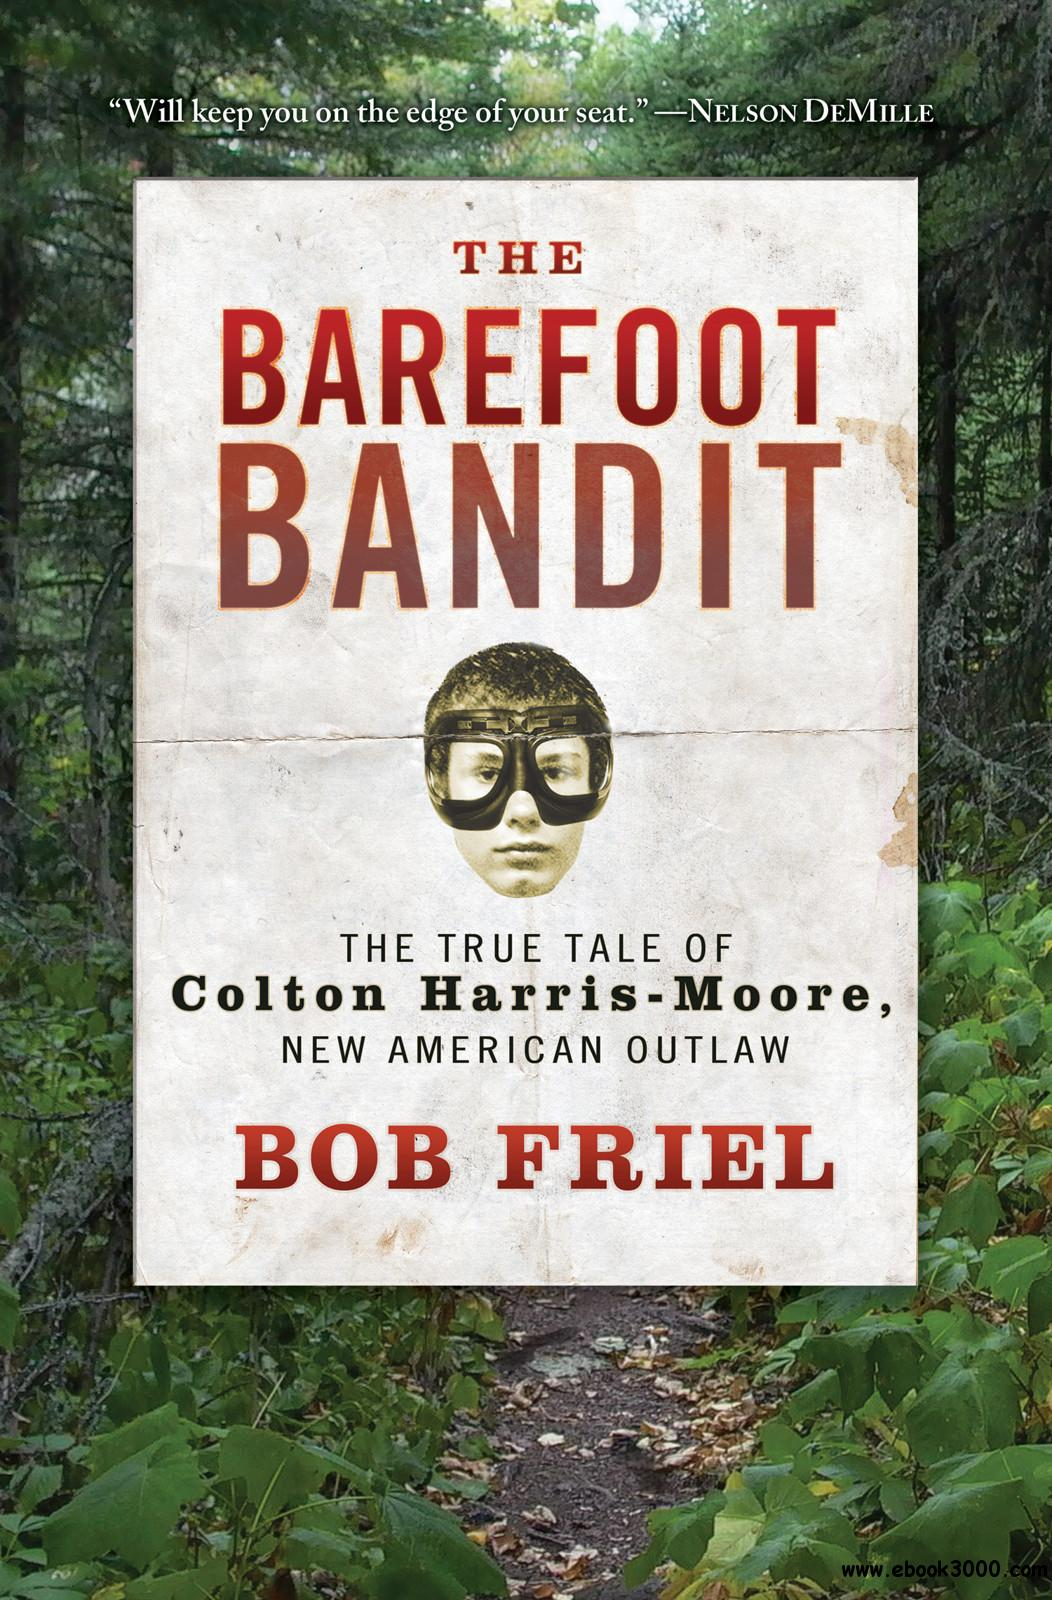 The Barefoot Bandit: The True Tale of Colton Harris-Moore, New American Outlaw free download